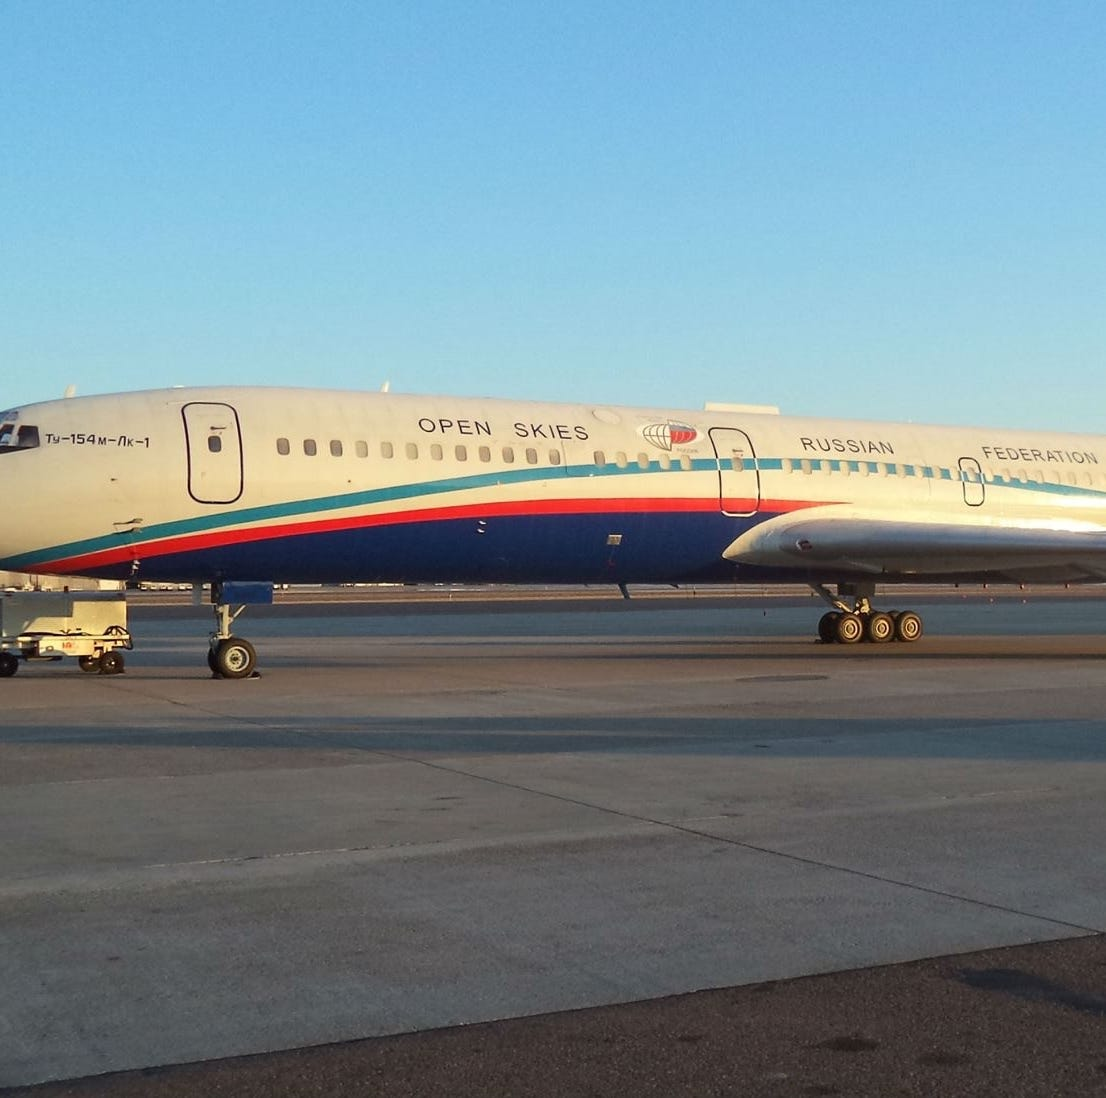 Here's why Russian surveillance flights were recently operated out of Great Falls